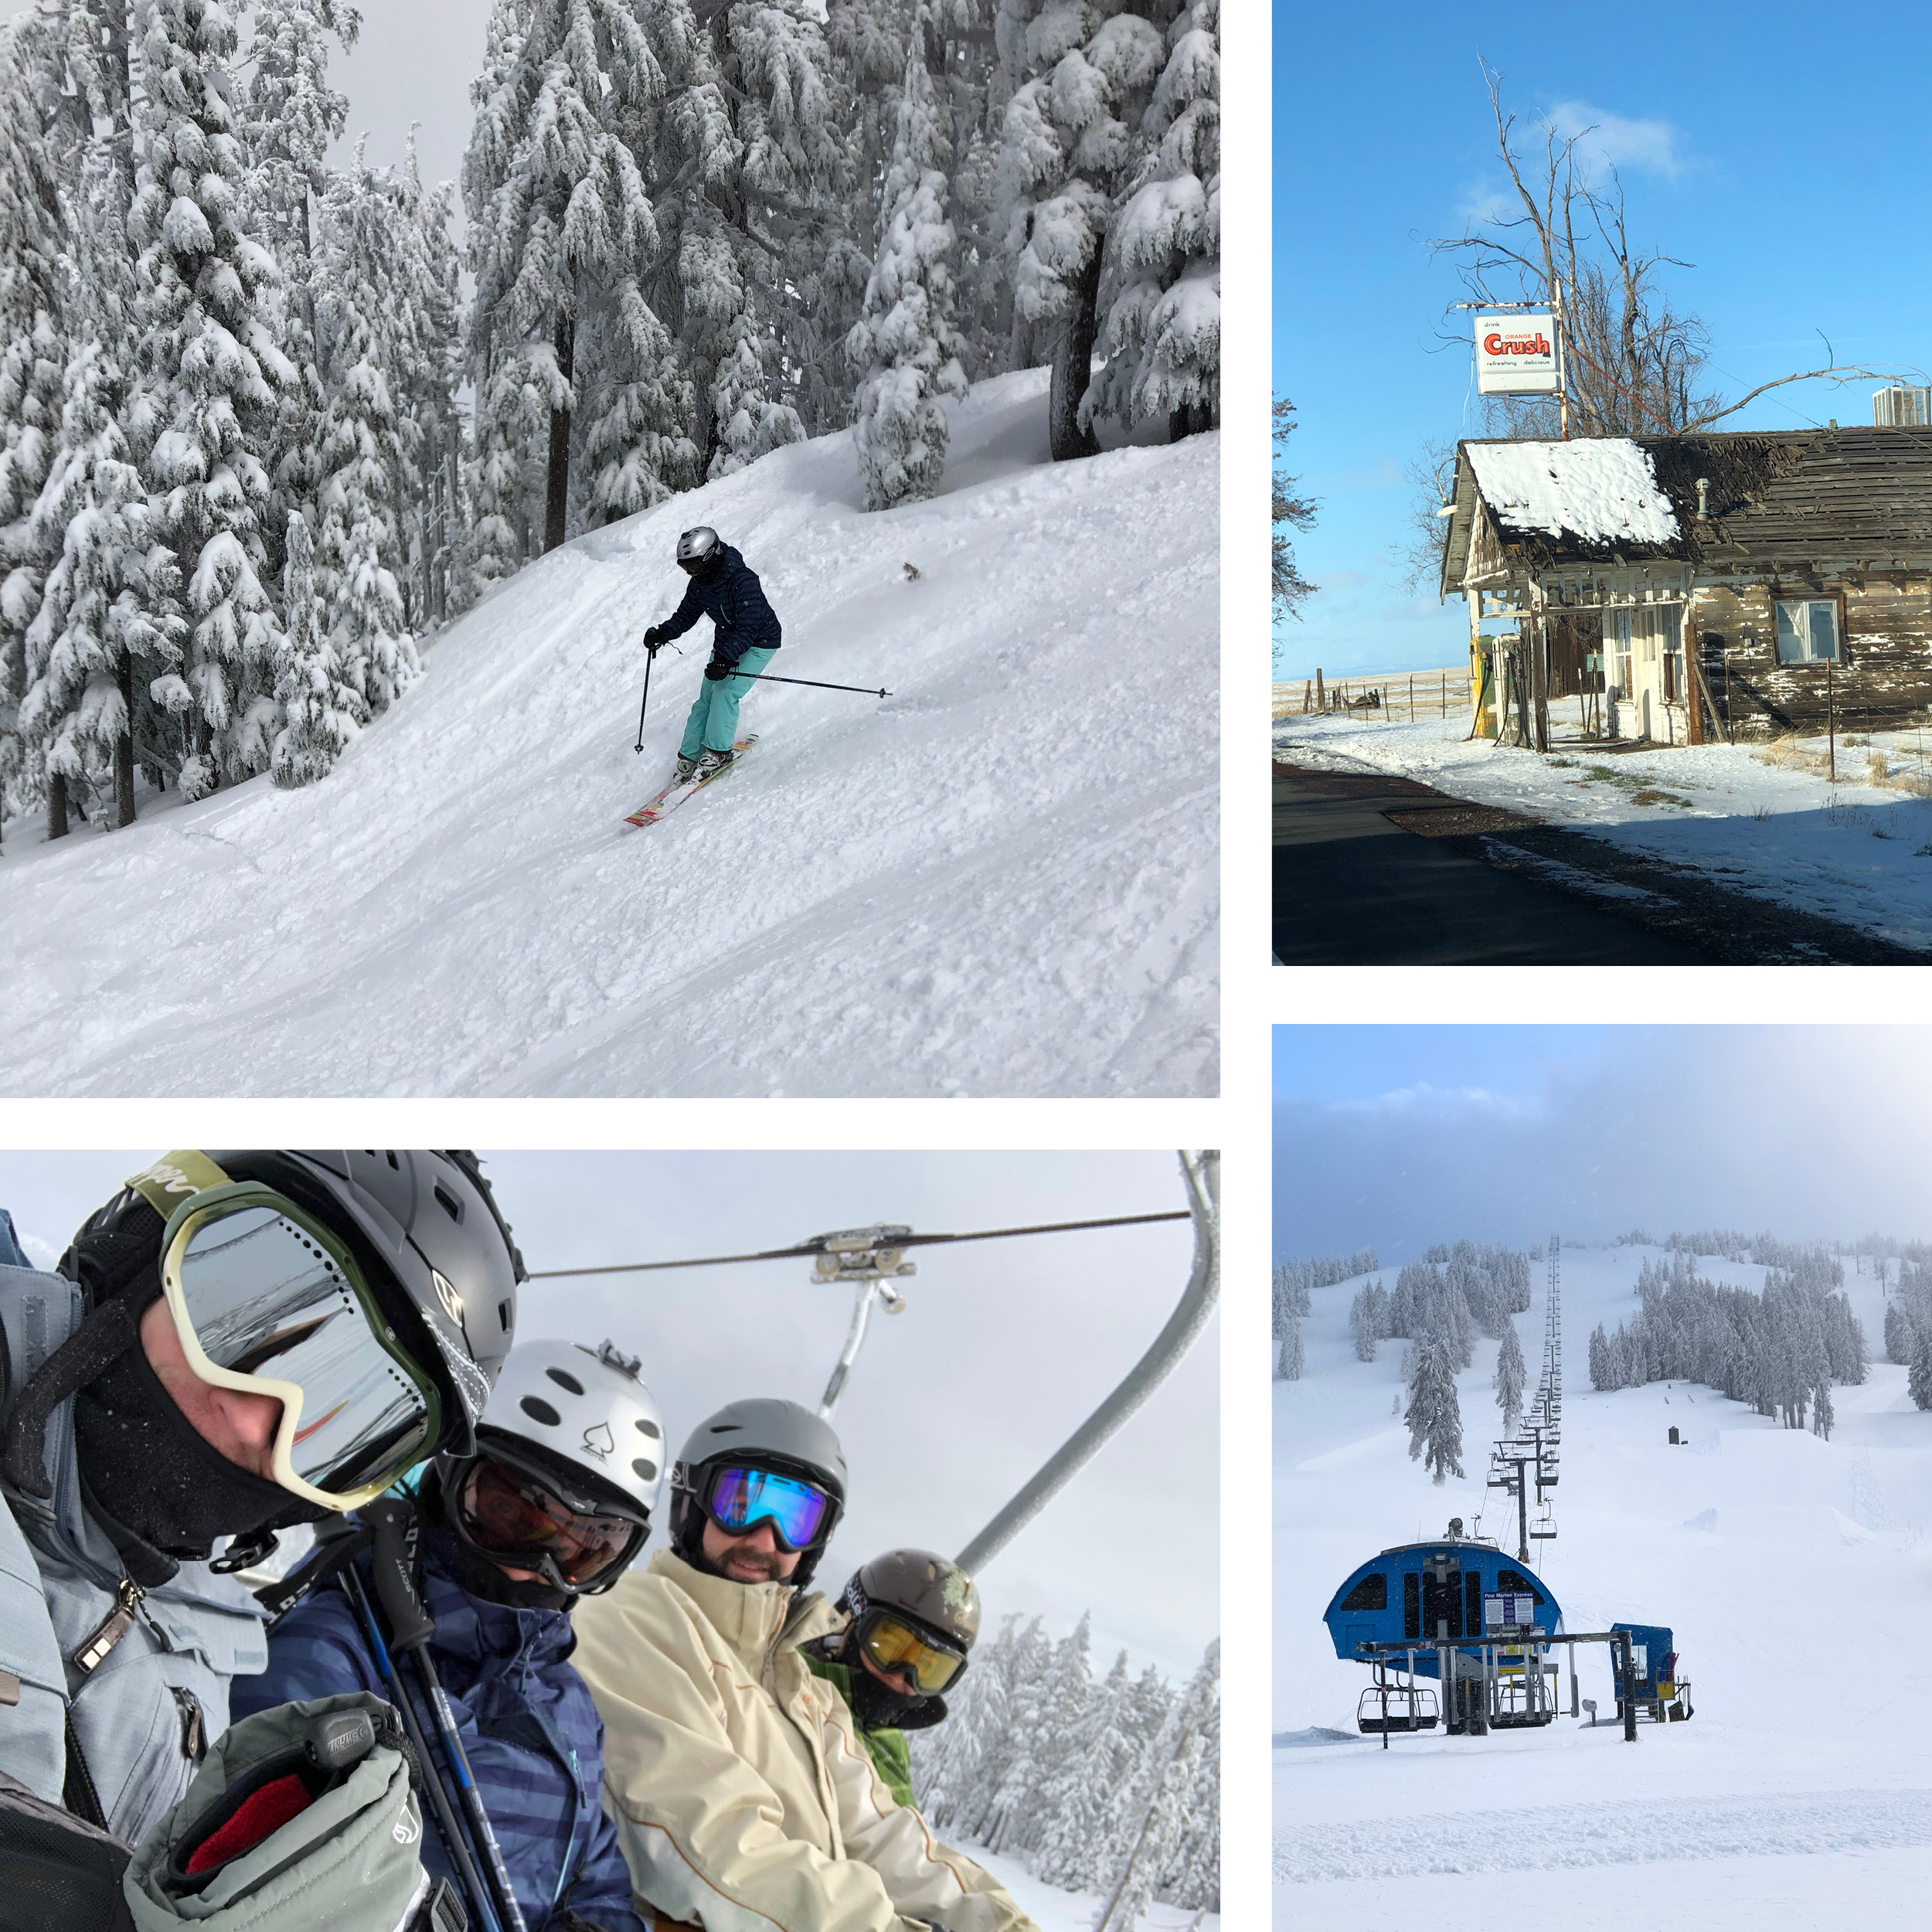 Hitting the slopes in Mt. Bachelor is a must-do winter activity in Oregon.